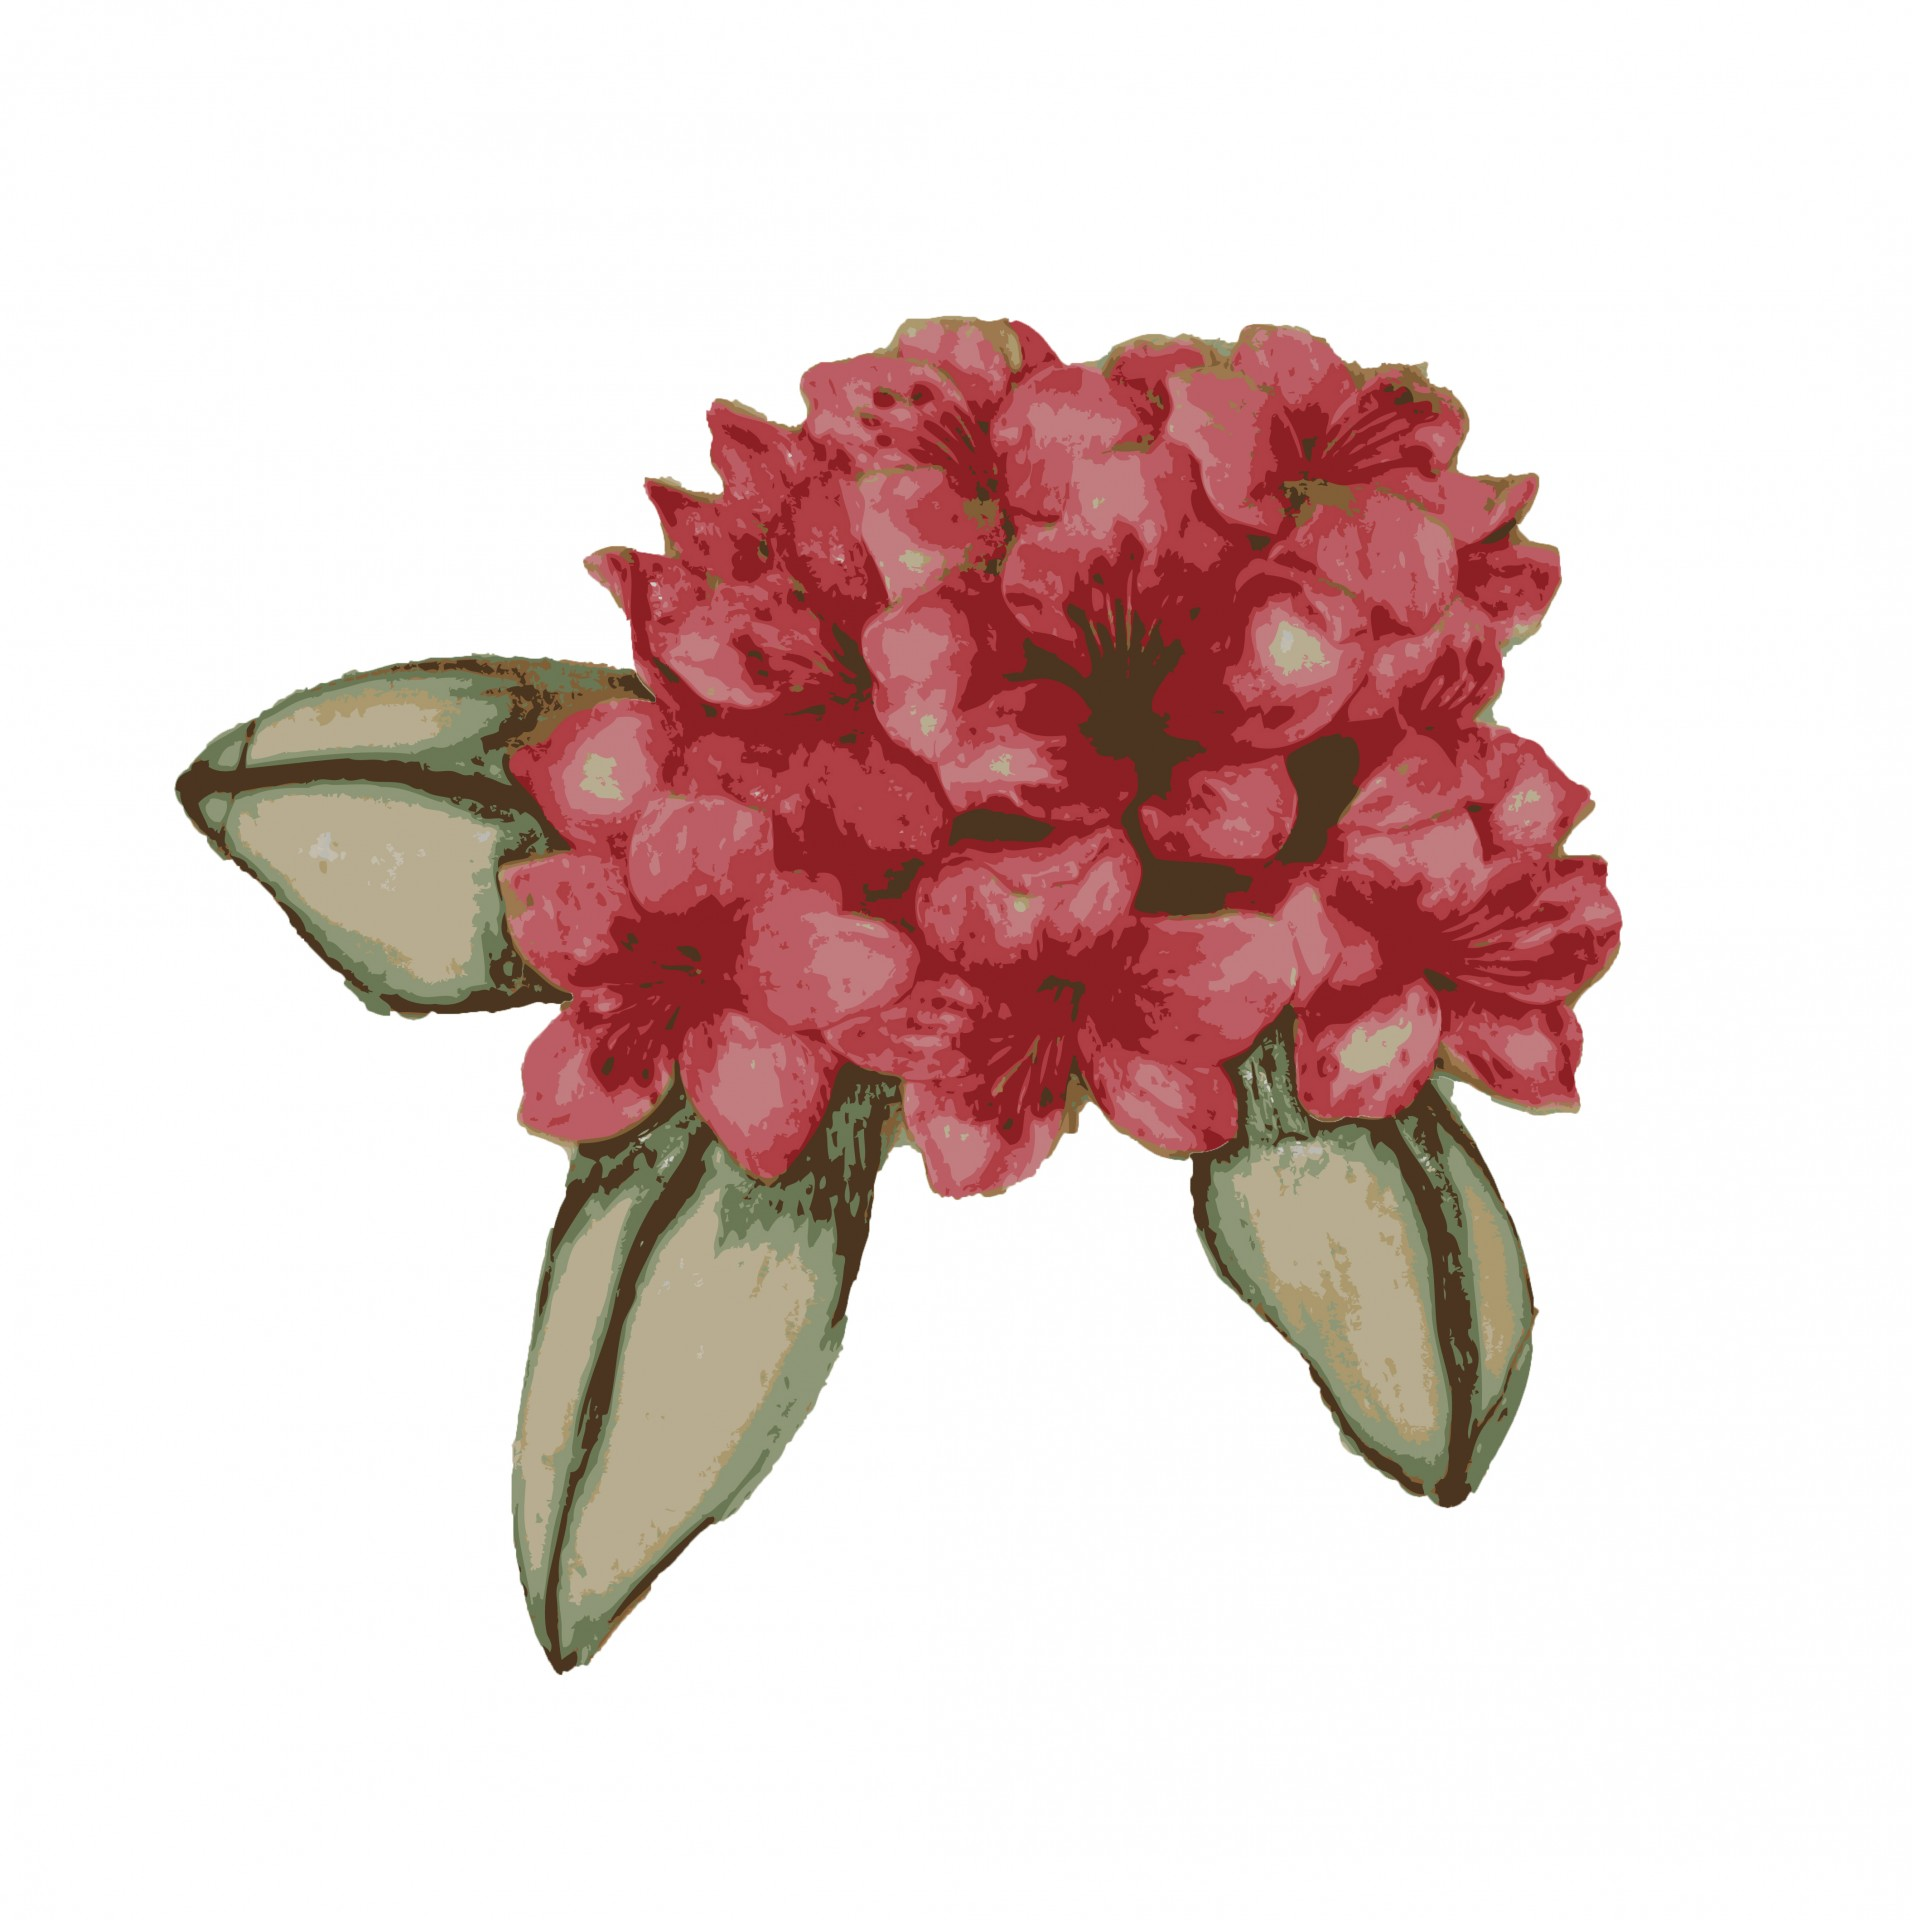 Flower Clipart Free Stock Photo.